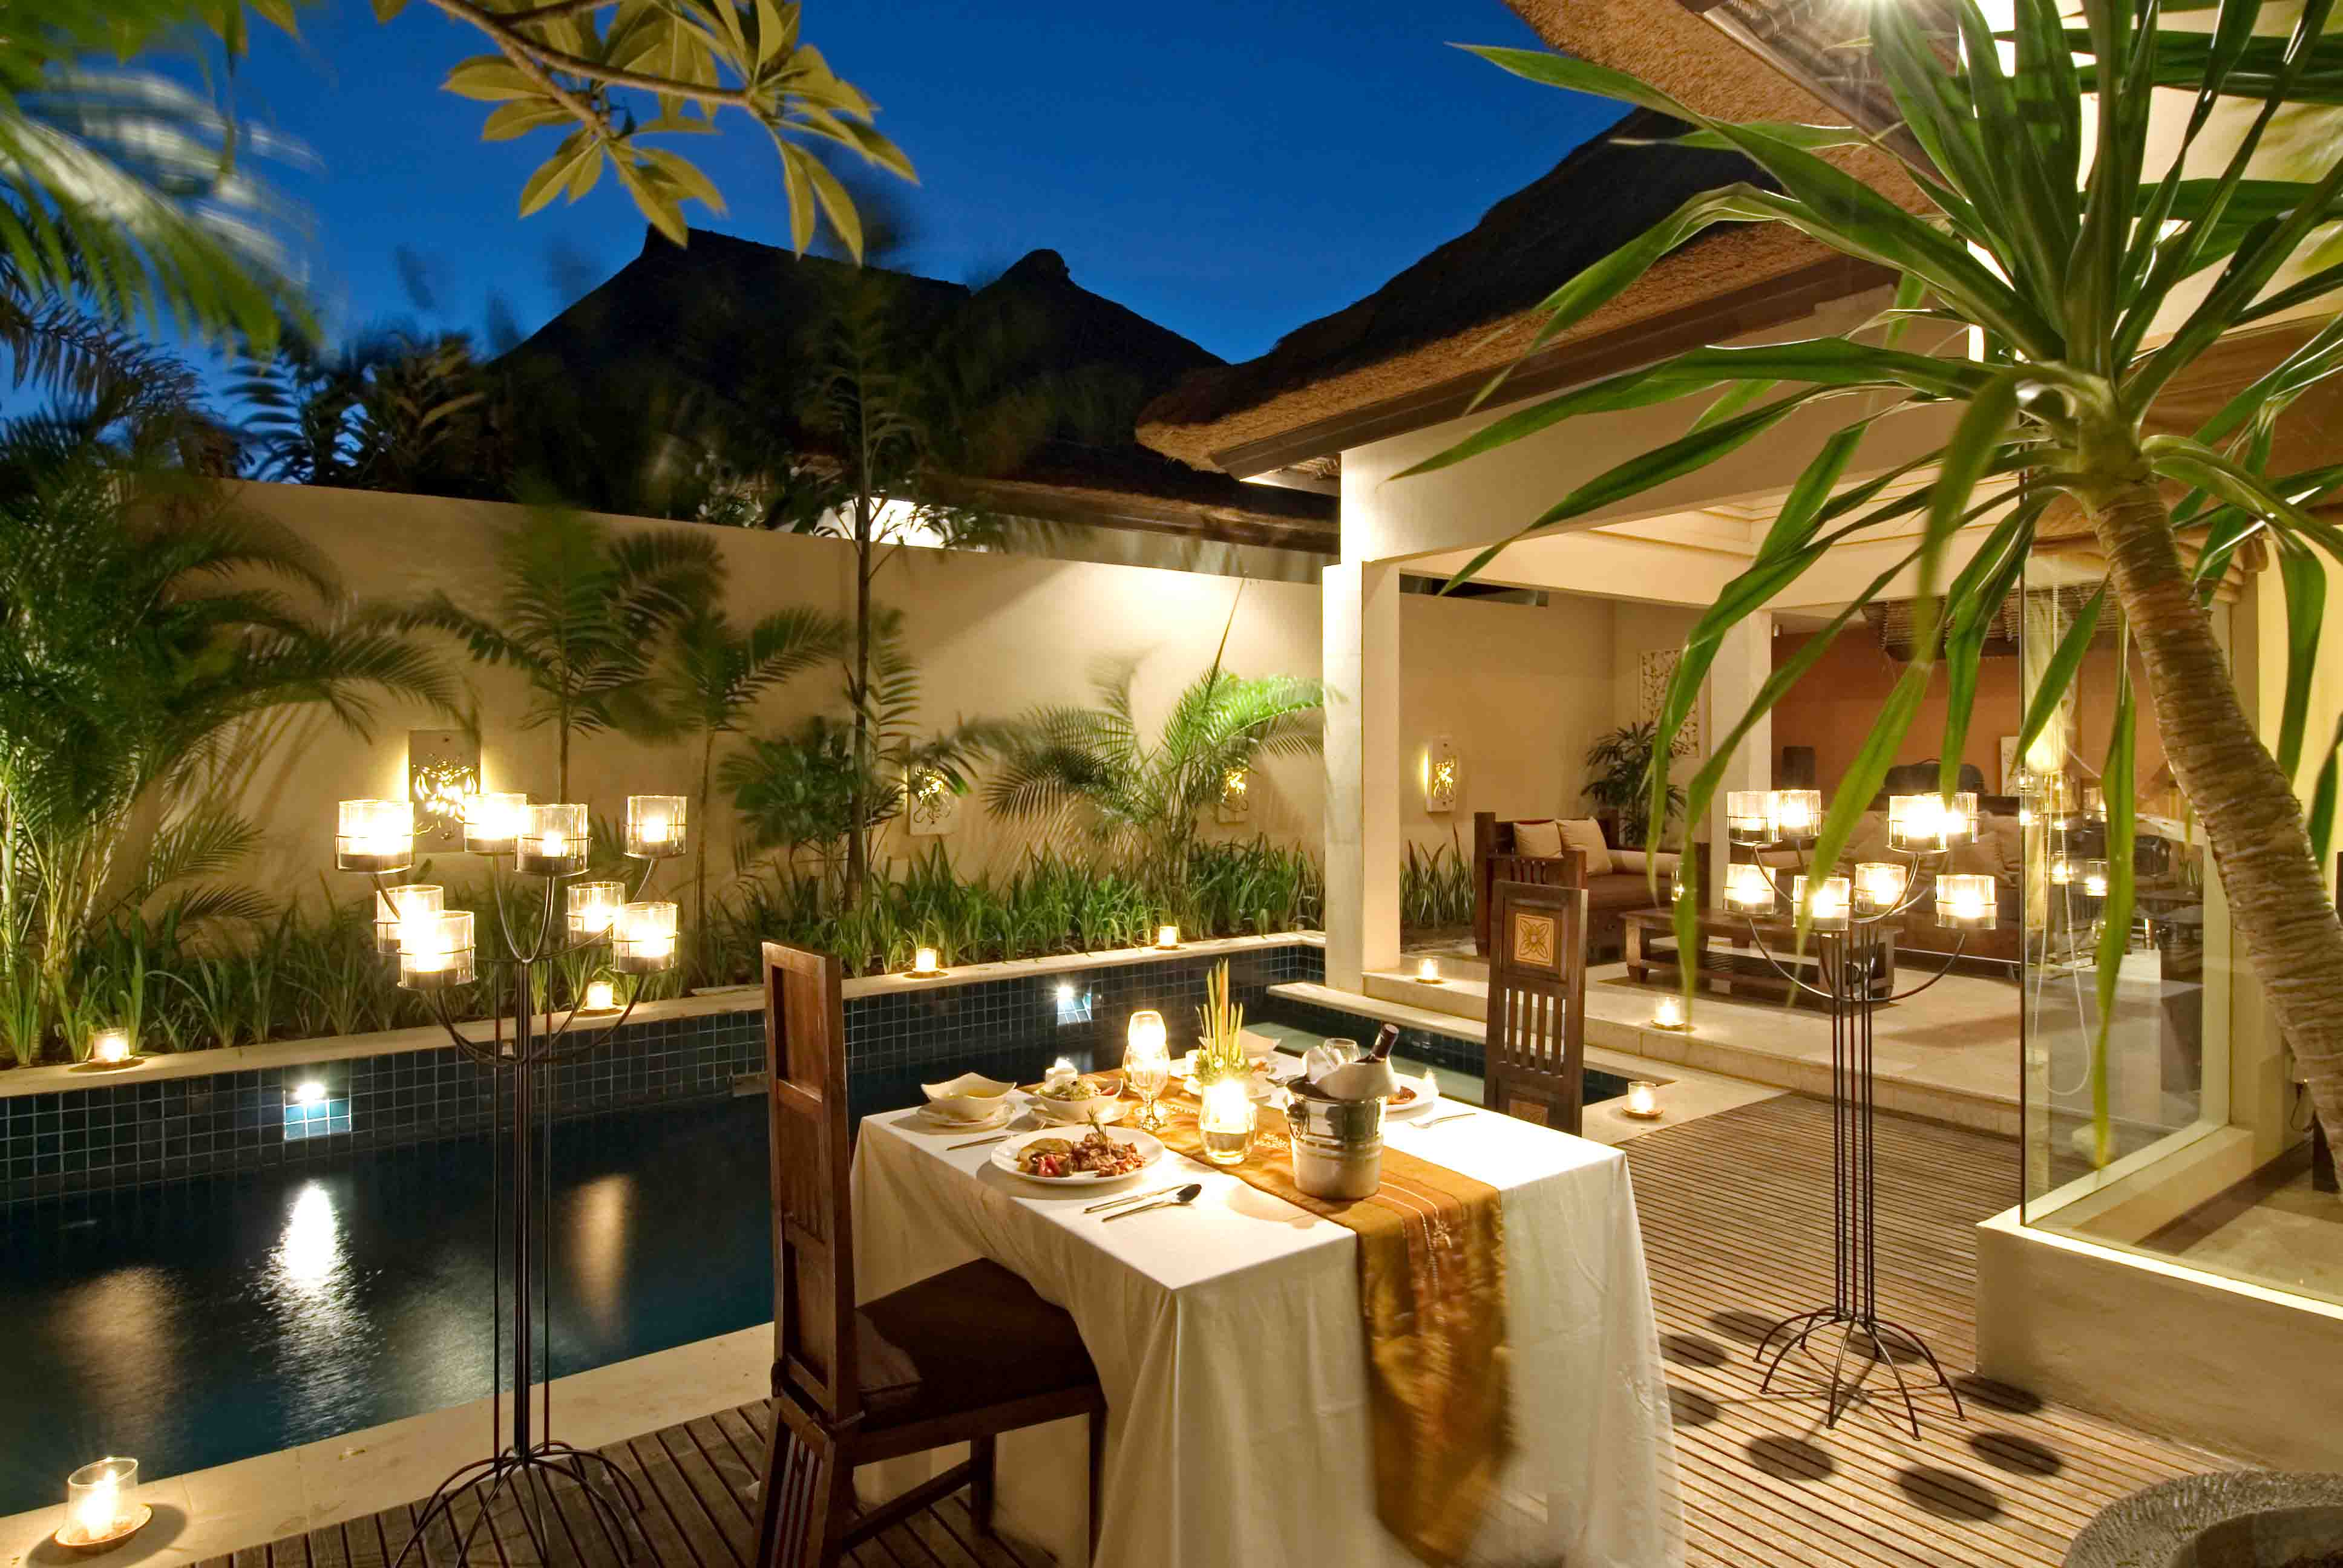 Aston Bhavana Villas Seminyak Bali Hotel Villa Blog Culture Travel Guide Indonesia Baliwww Com